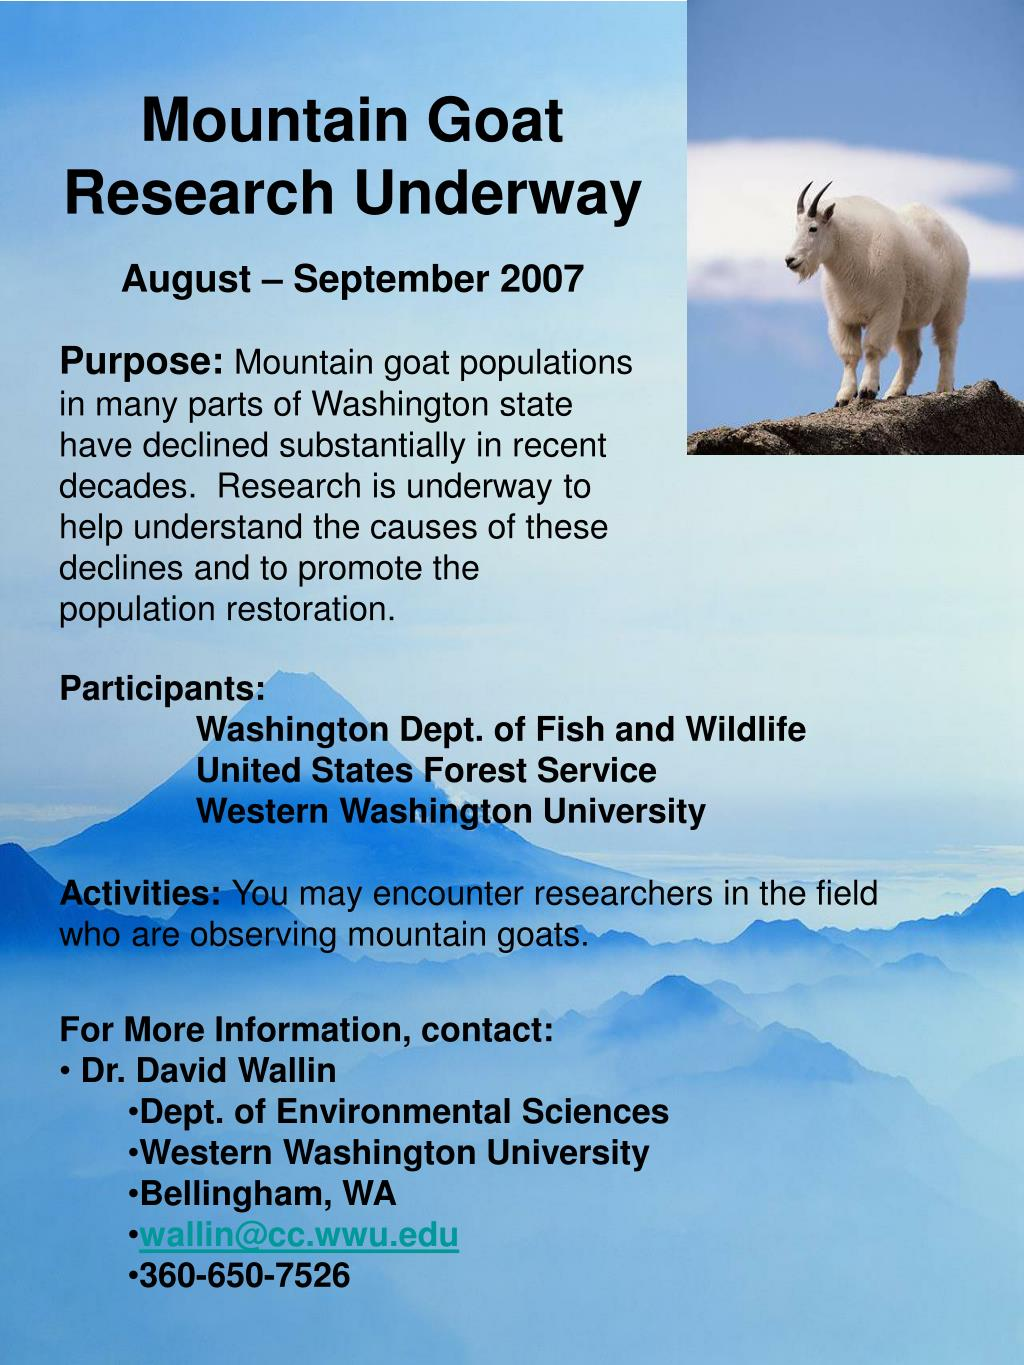 Mountain Goat Research Underway